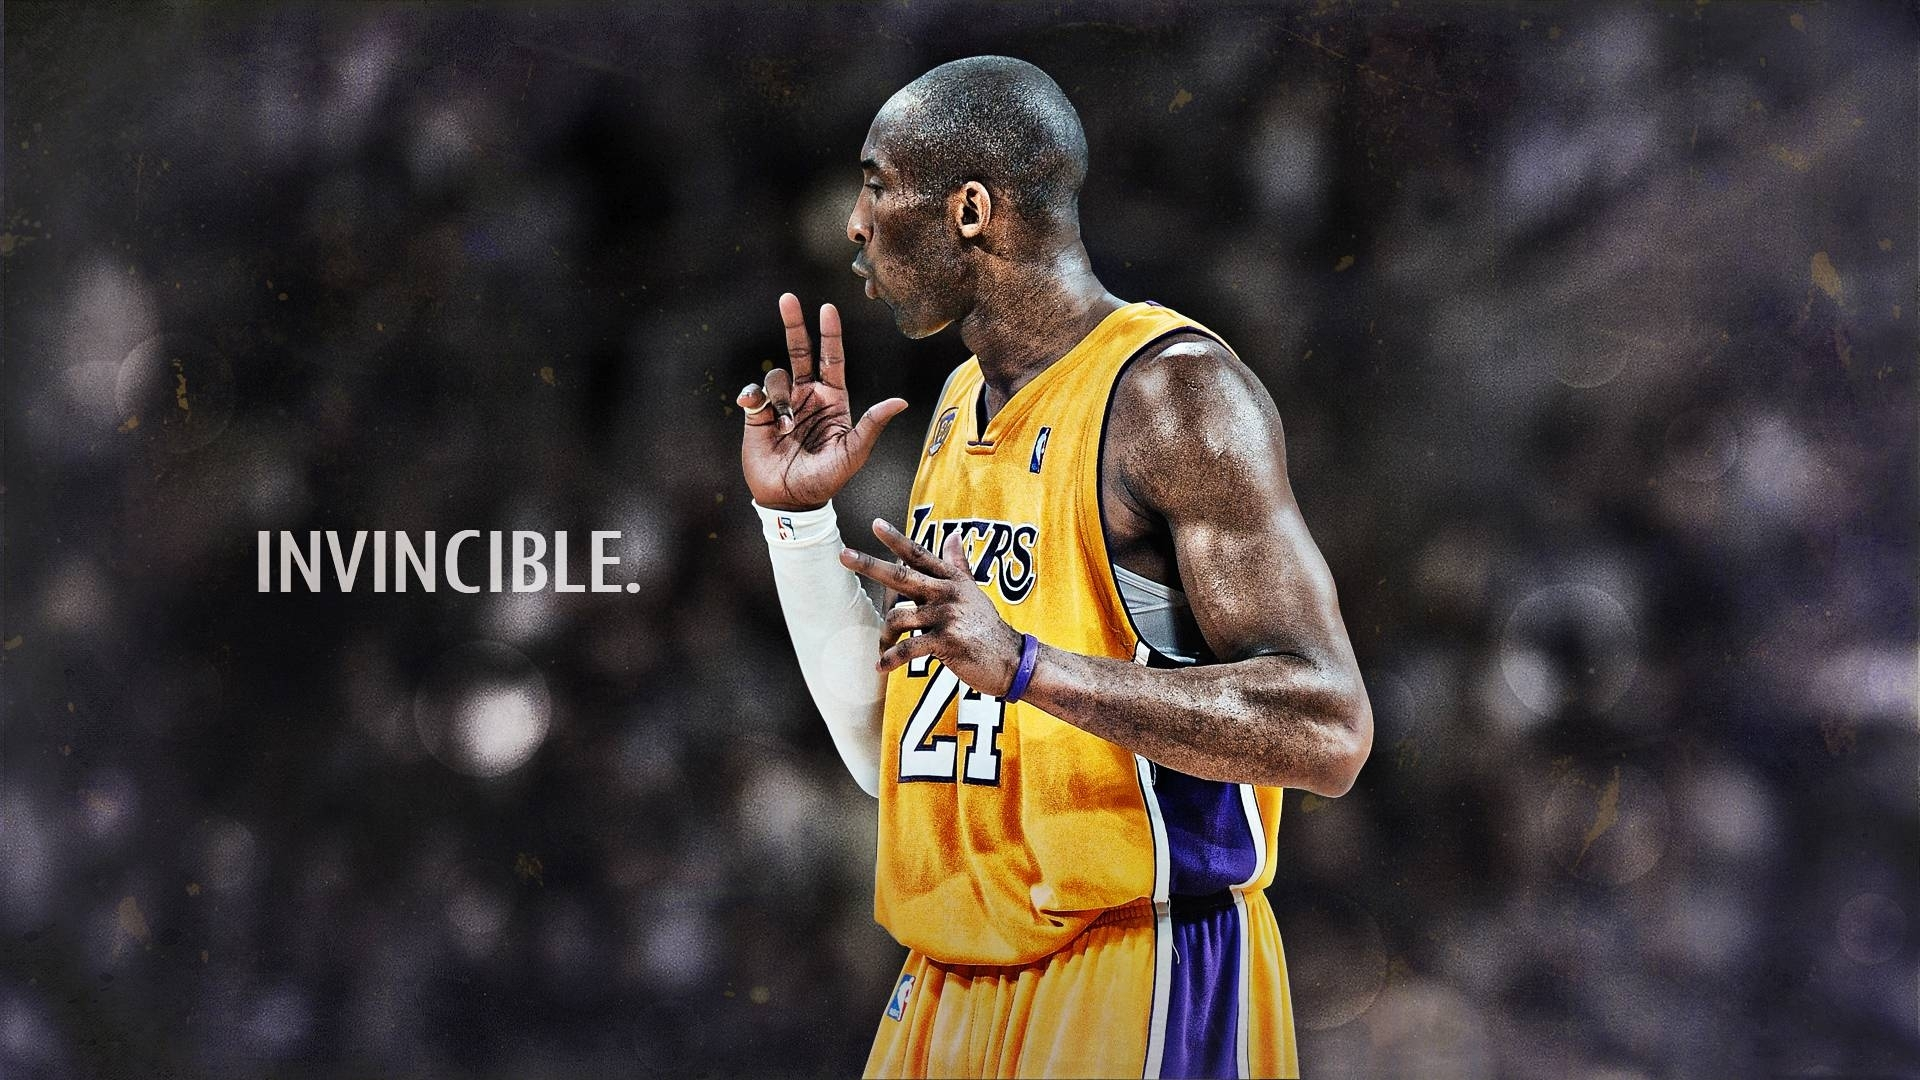 kobe bryant wallpaper hd ~ desktop wallpaper box